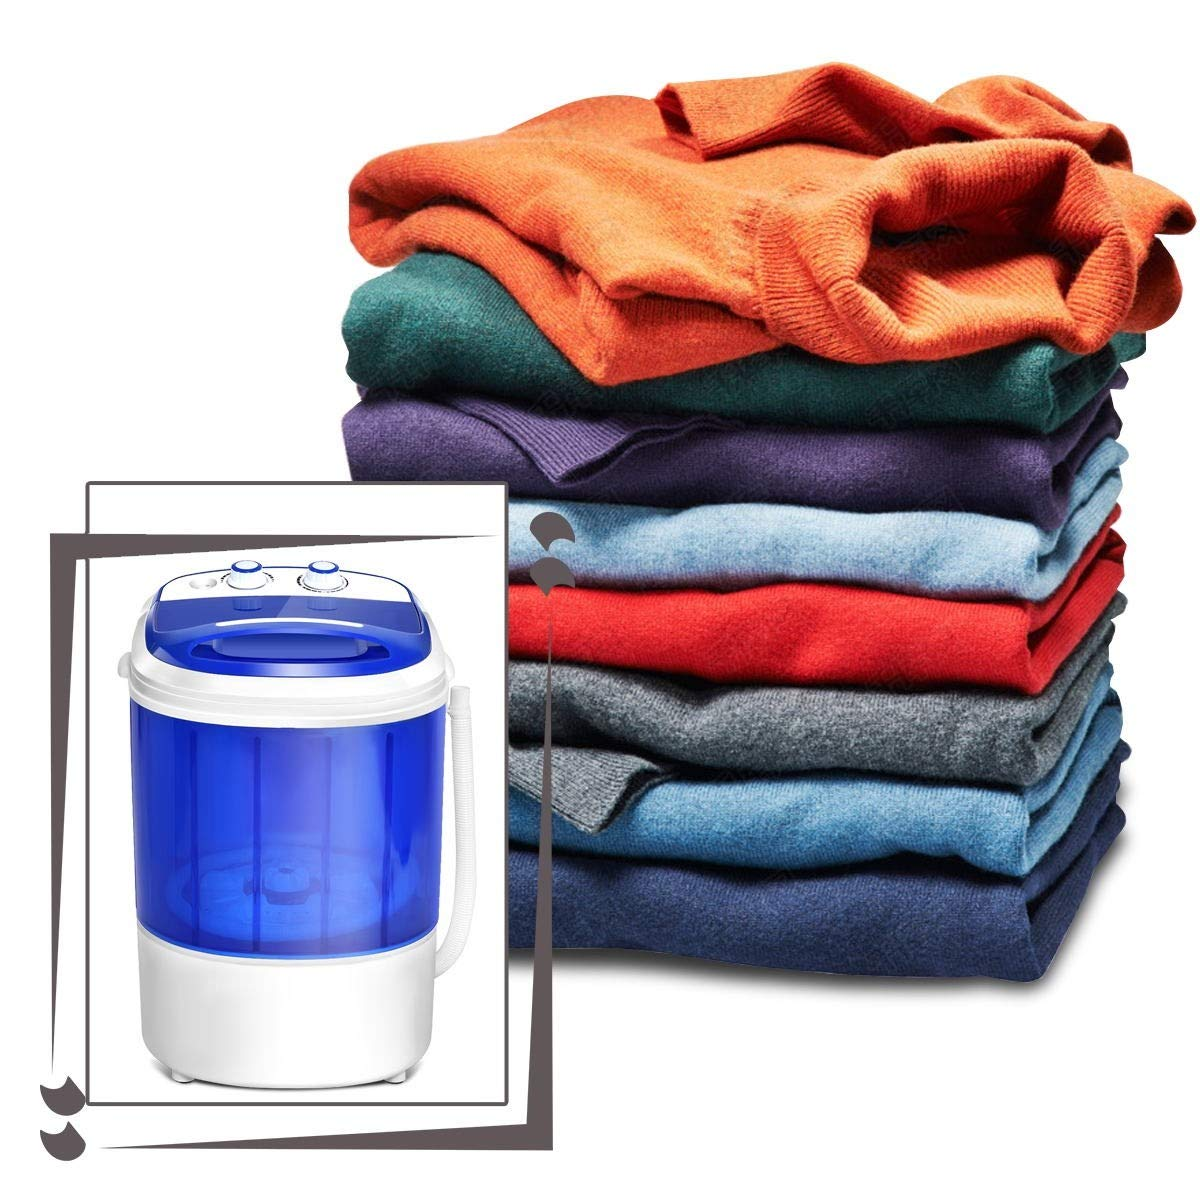 MD Group Mini Portable Washer Washing Machine by MD Group (Image #8)